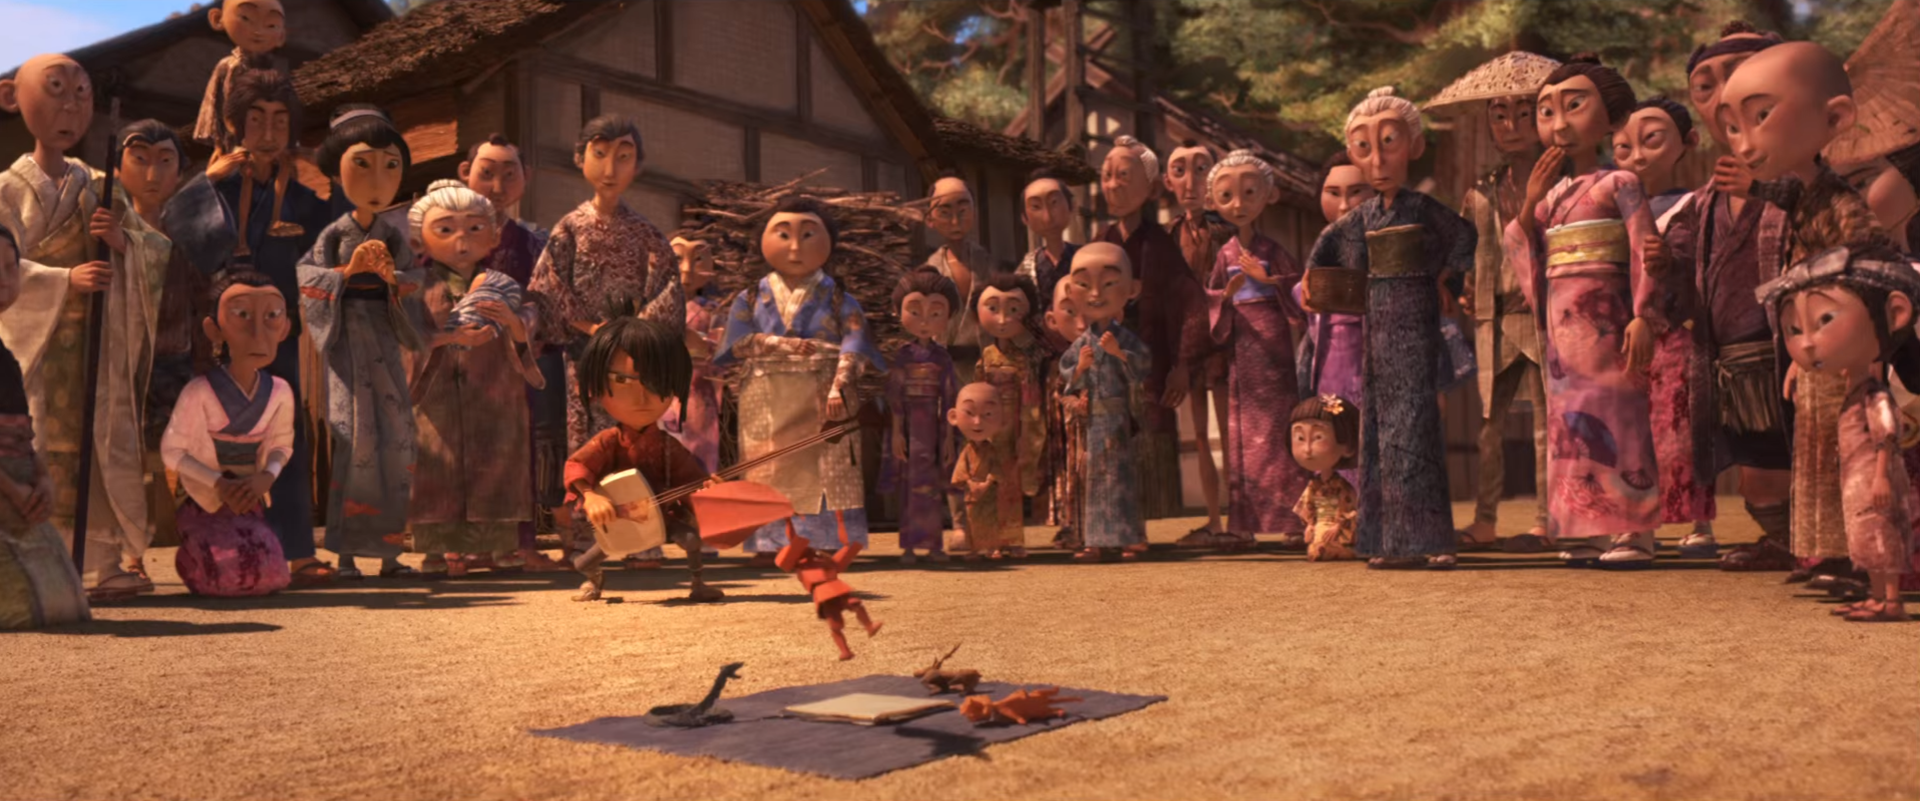 kubo_e_as_duas_cordas_kubo_and_the_two_strings_analise_ana_beatriz_varela_03_pn